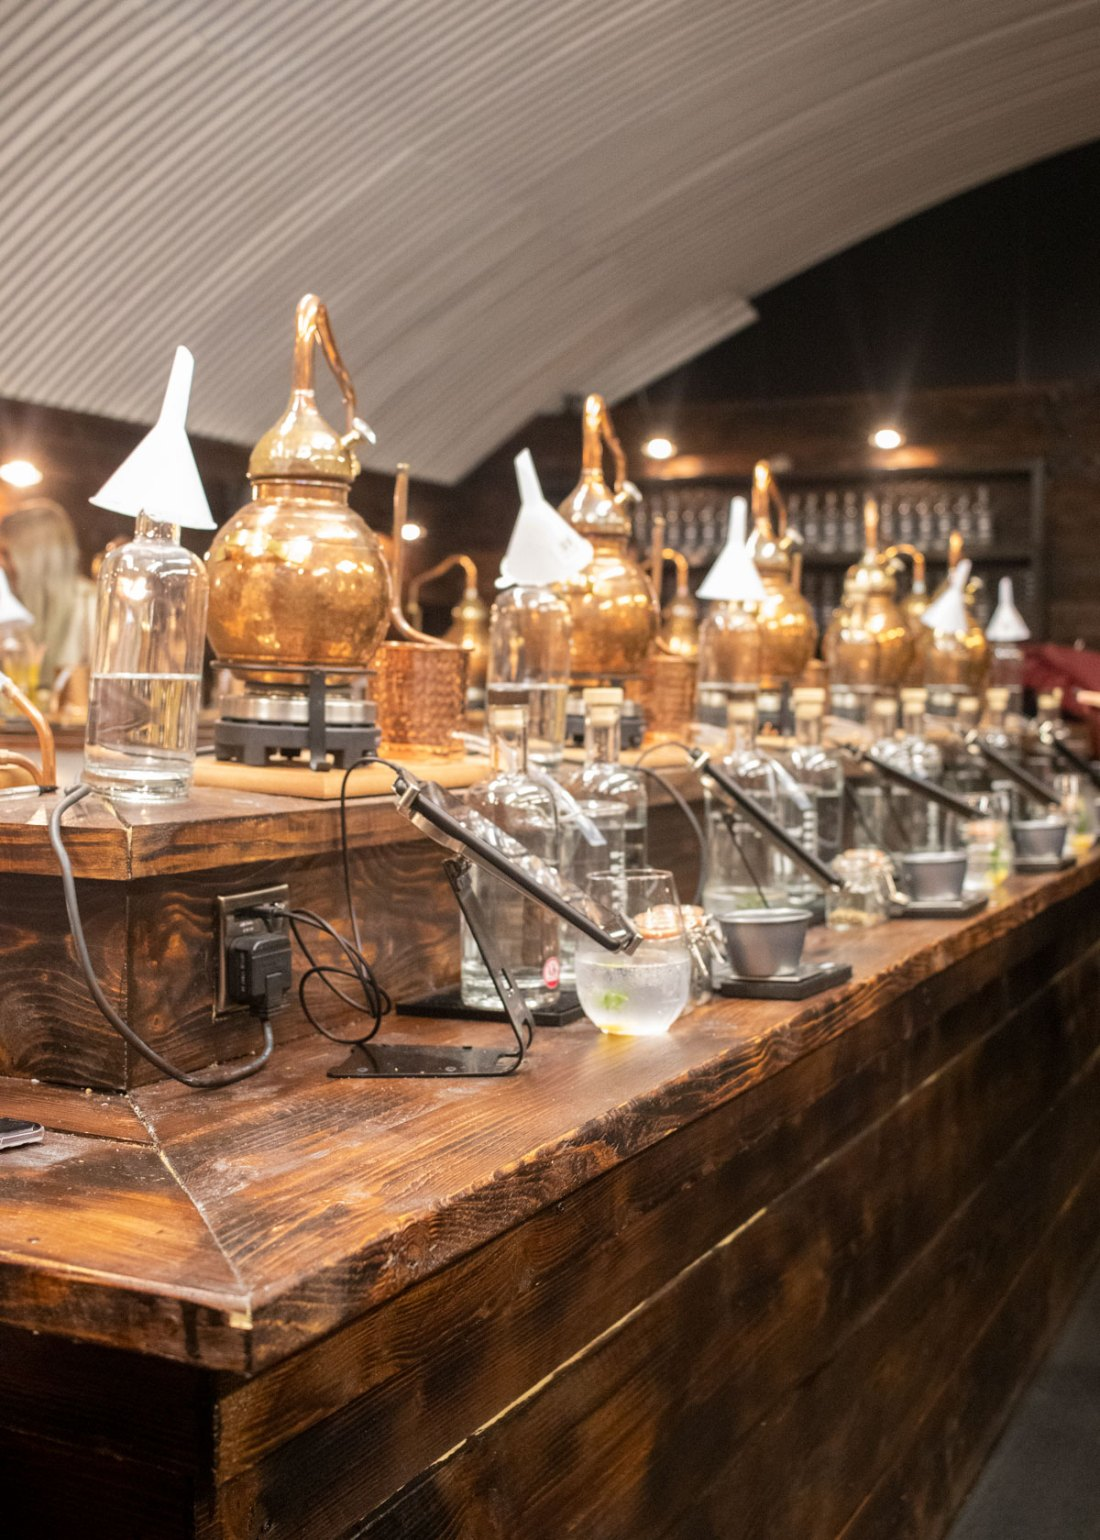 Make-Your-Own-Gin-at-Manchester-Three-Rivers